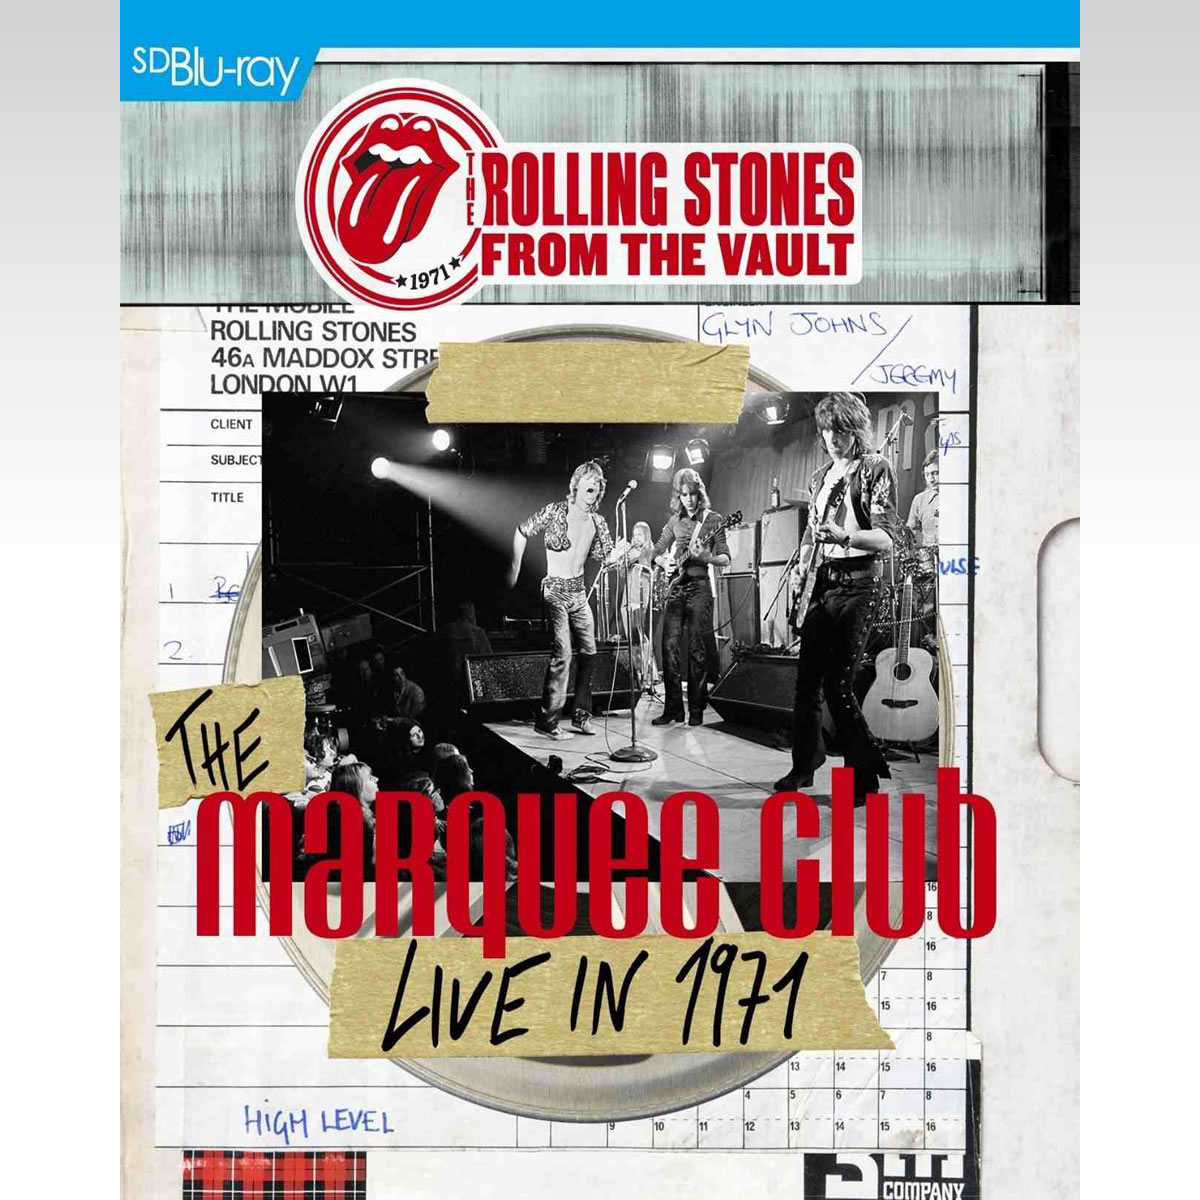 ROLLING STONES: FROM THE VAULT - THE MARQUEE - LIVE IN 1971 [SD UPSCALED] (BLU-RAY)